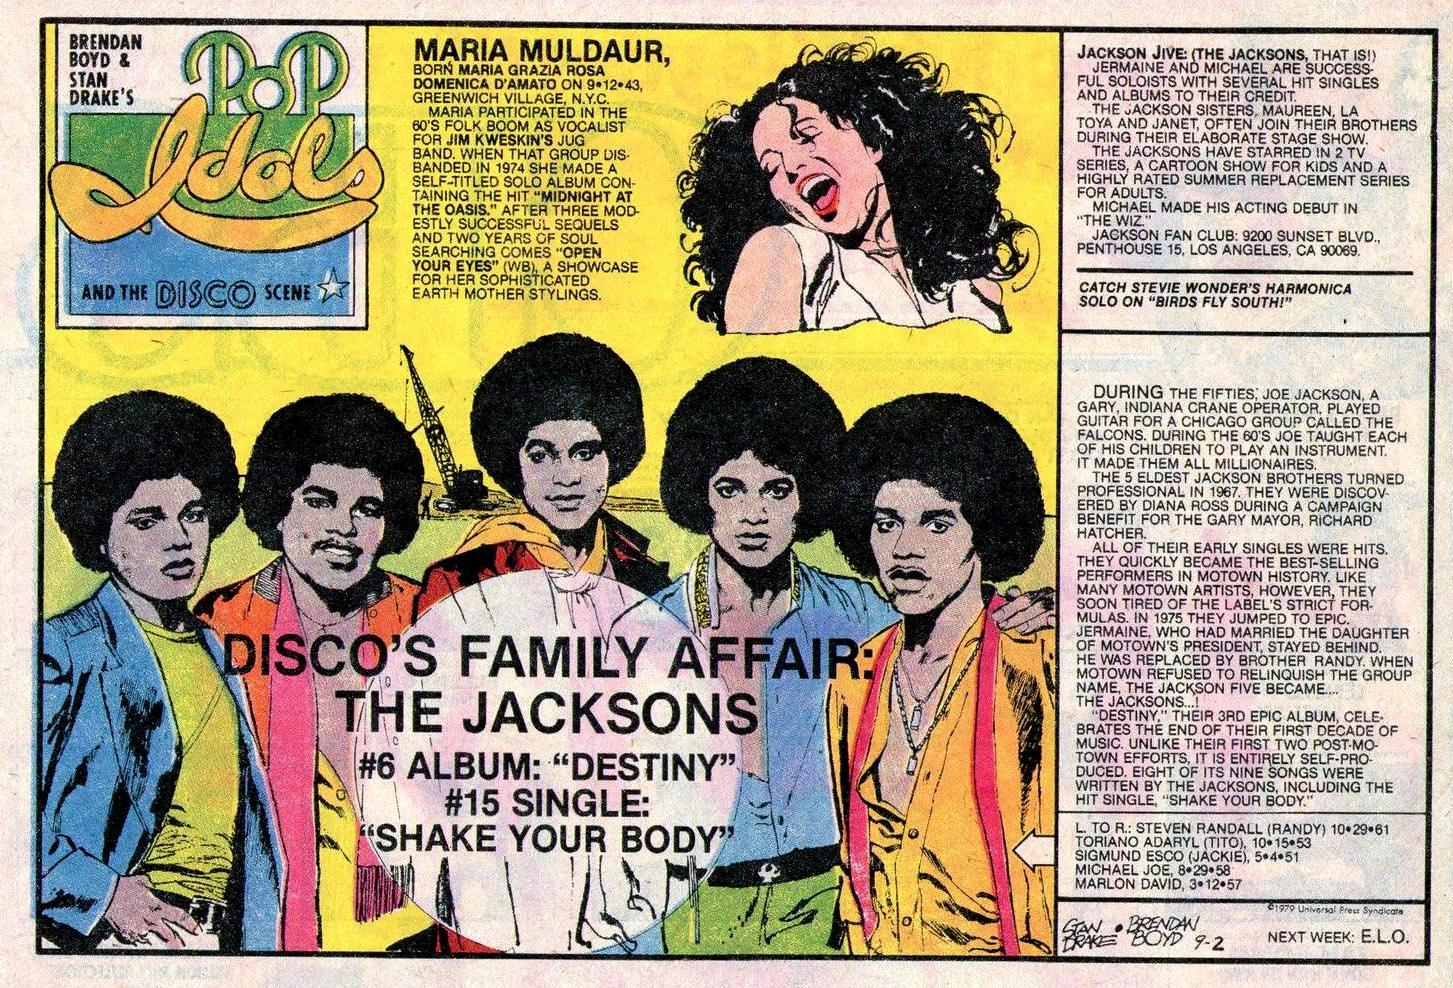 POP IDOLS AND THE DISCO SCENE Newspaper Strip Sunday Sept 2 1979